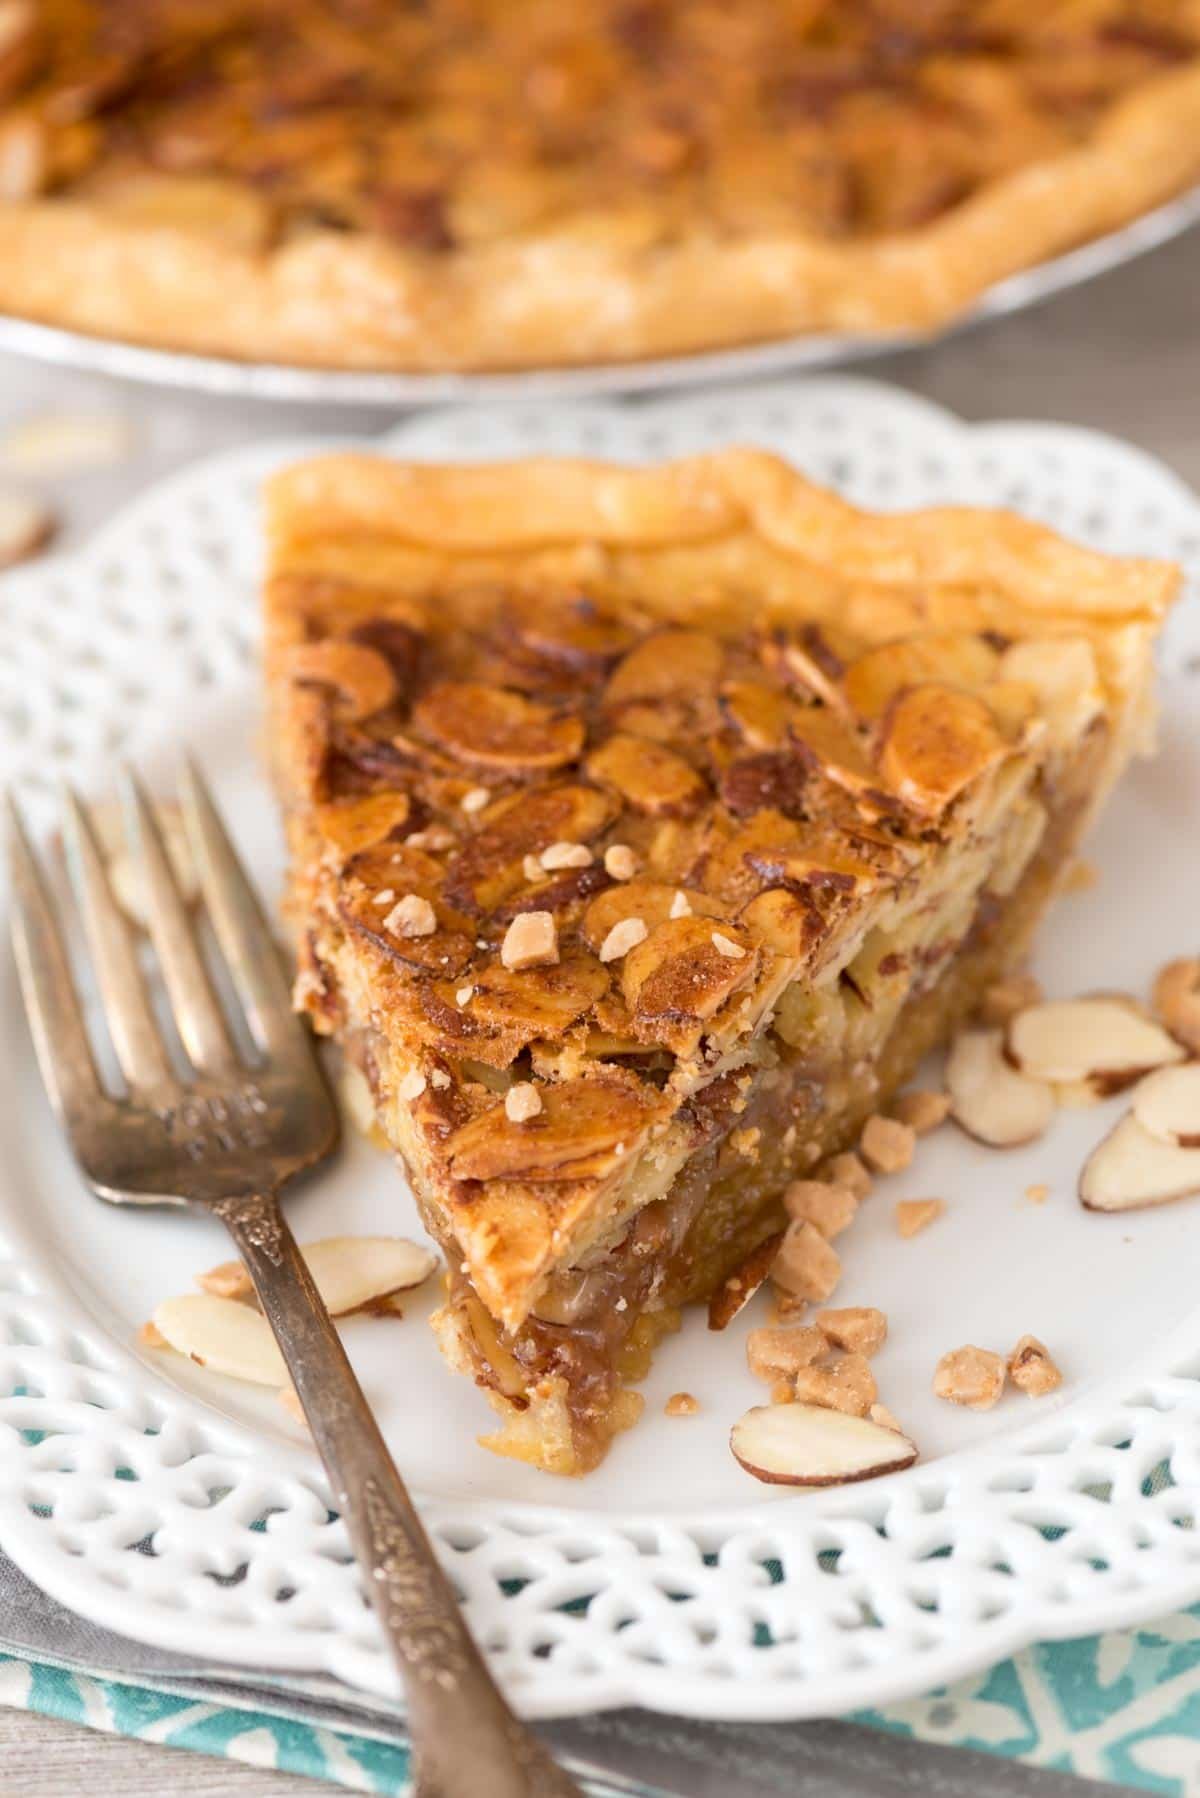 EASY Toffee Almond Pie - this pie recipe is like a pecan pie but with almonds and toffee instead!